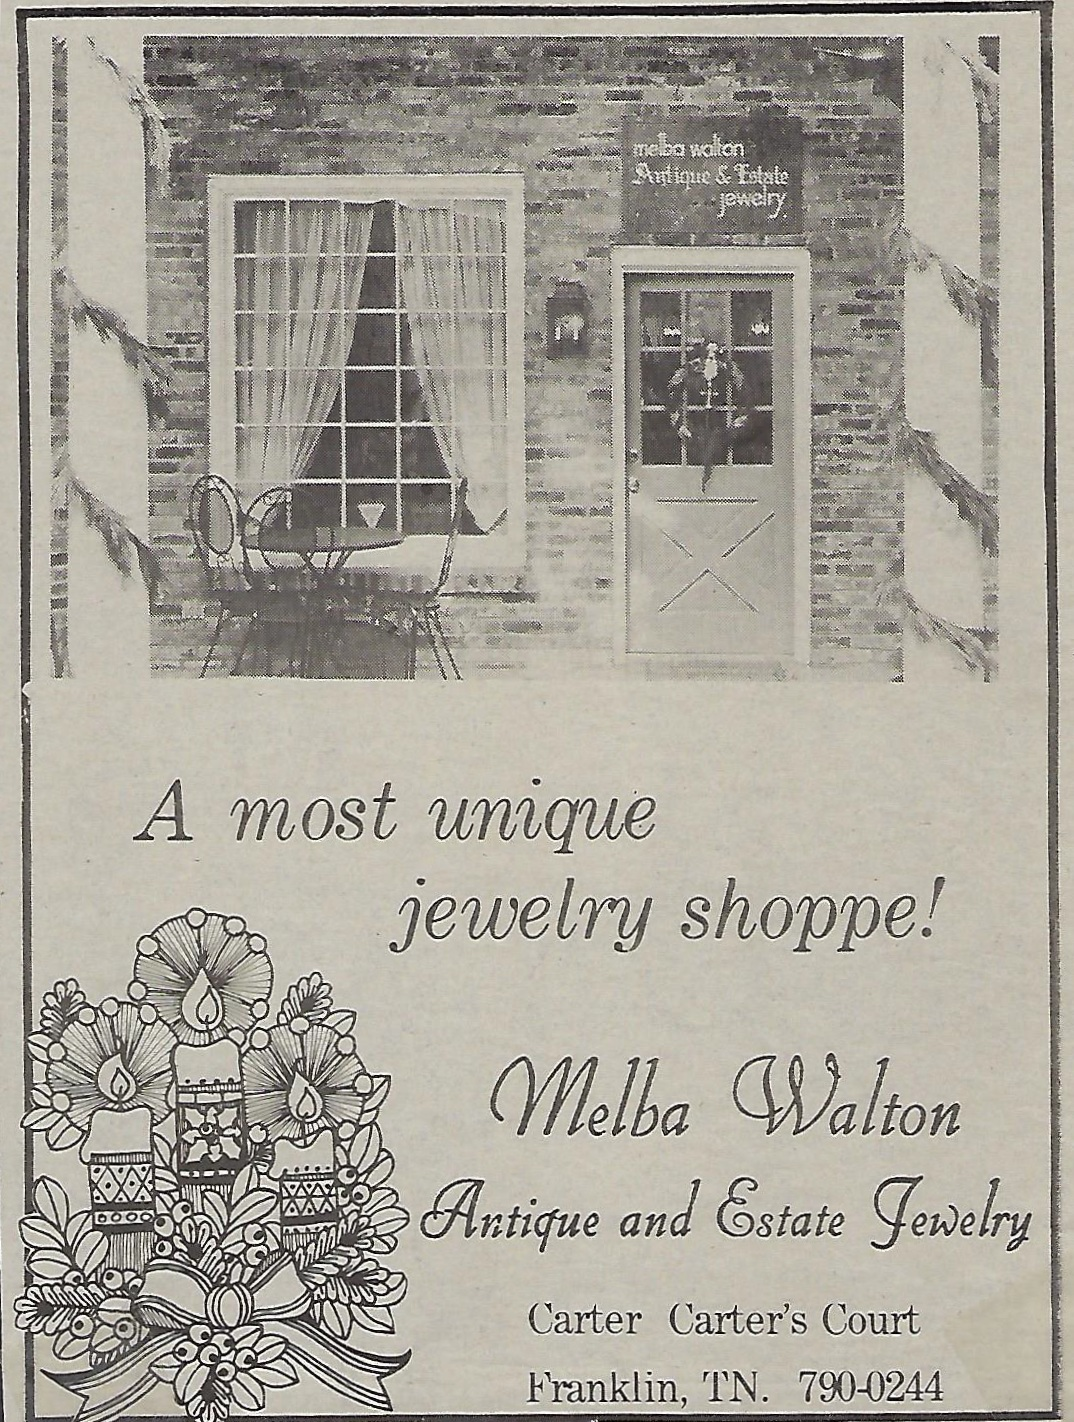 Our original location pictured here in a newspaper ad in 1981.